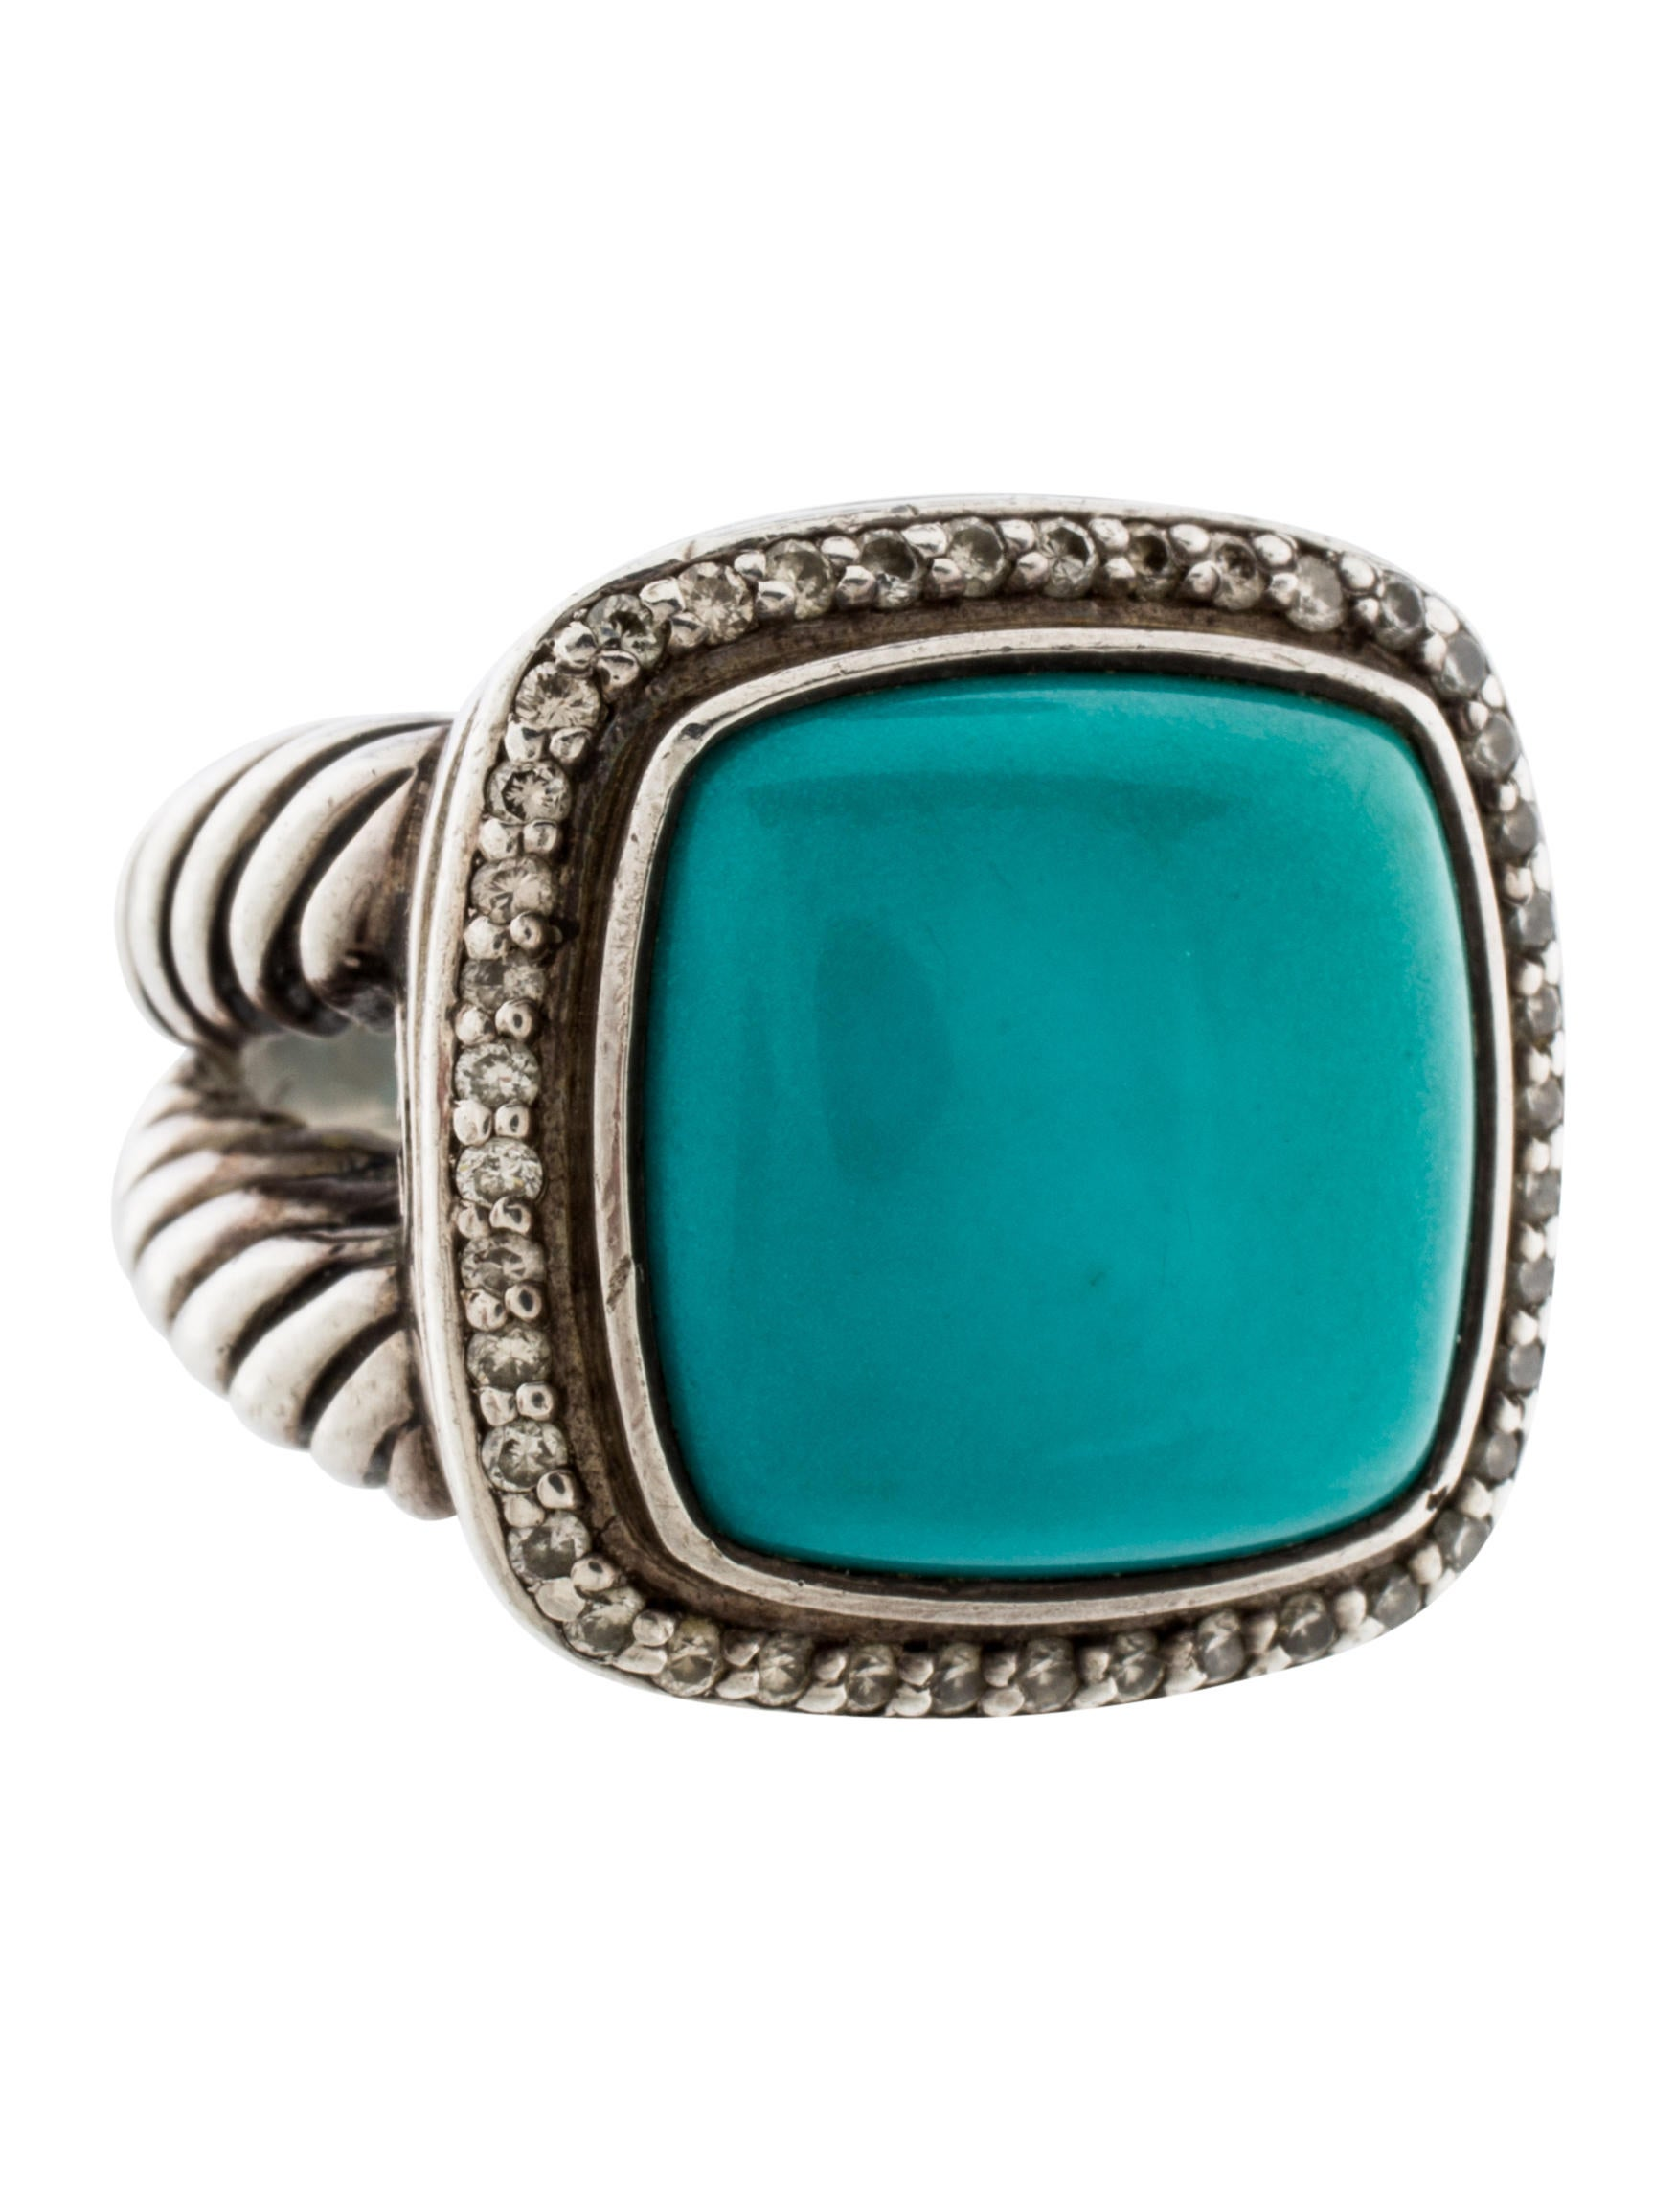 katz moda ring tourmaline paraiba operandi martin rings blue by teal large loading